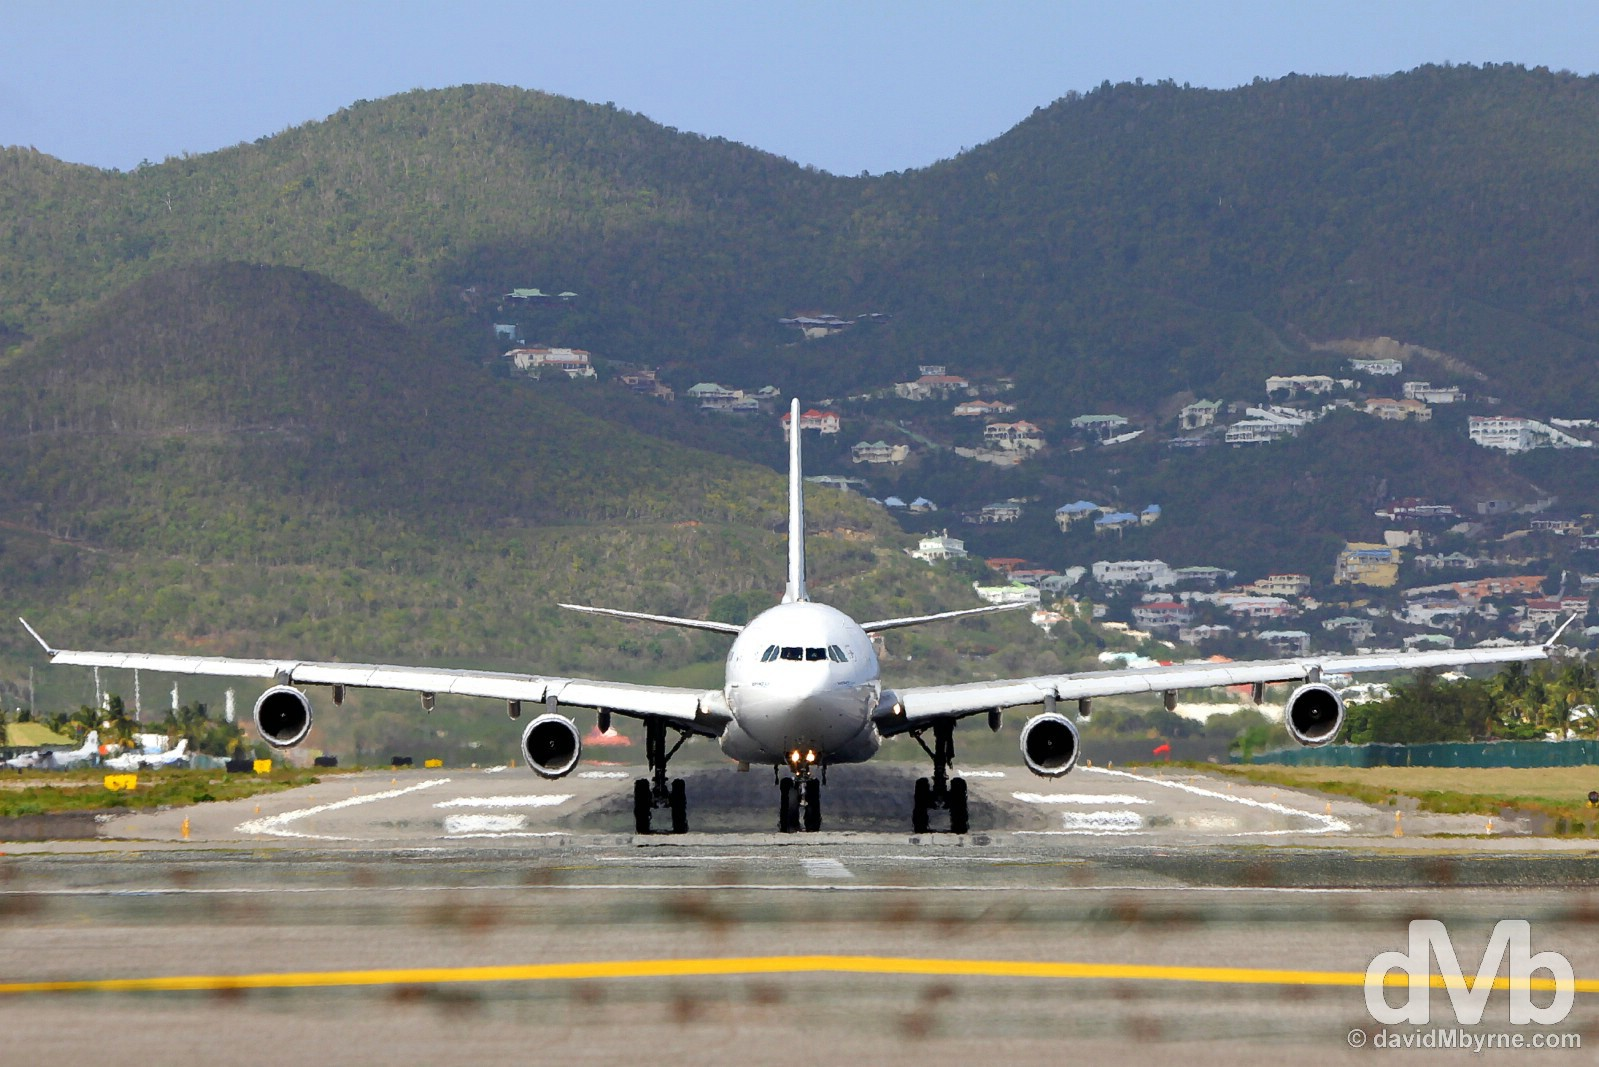 Taxiing for take-off at Juliana Airport, Sint Maarten, Lesser Antilles. June 8, 2015.